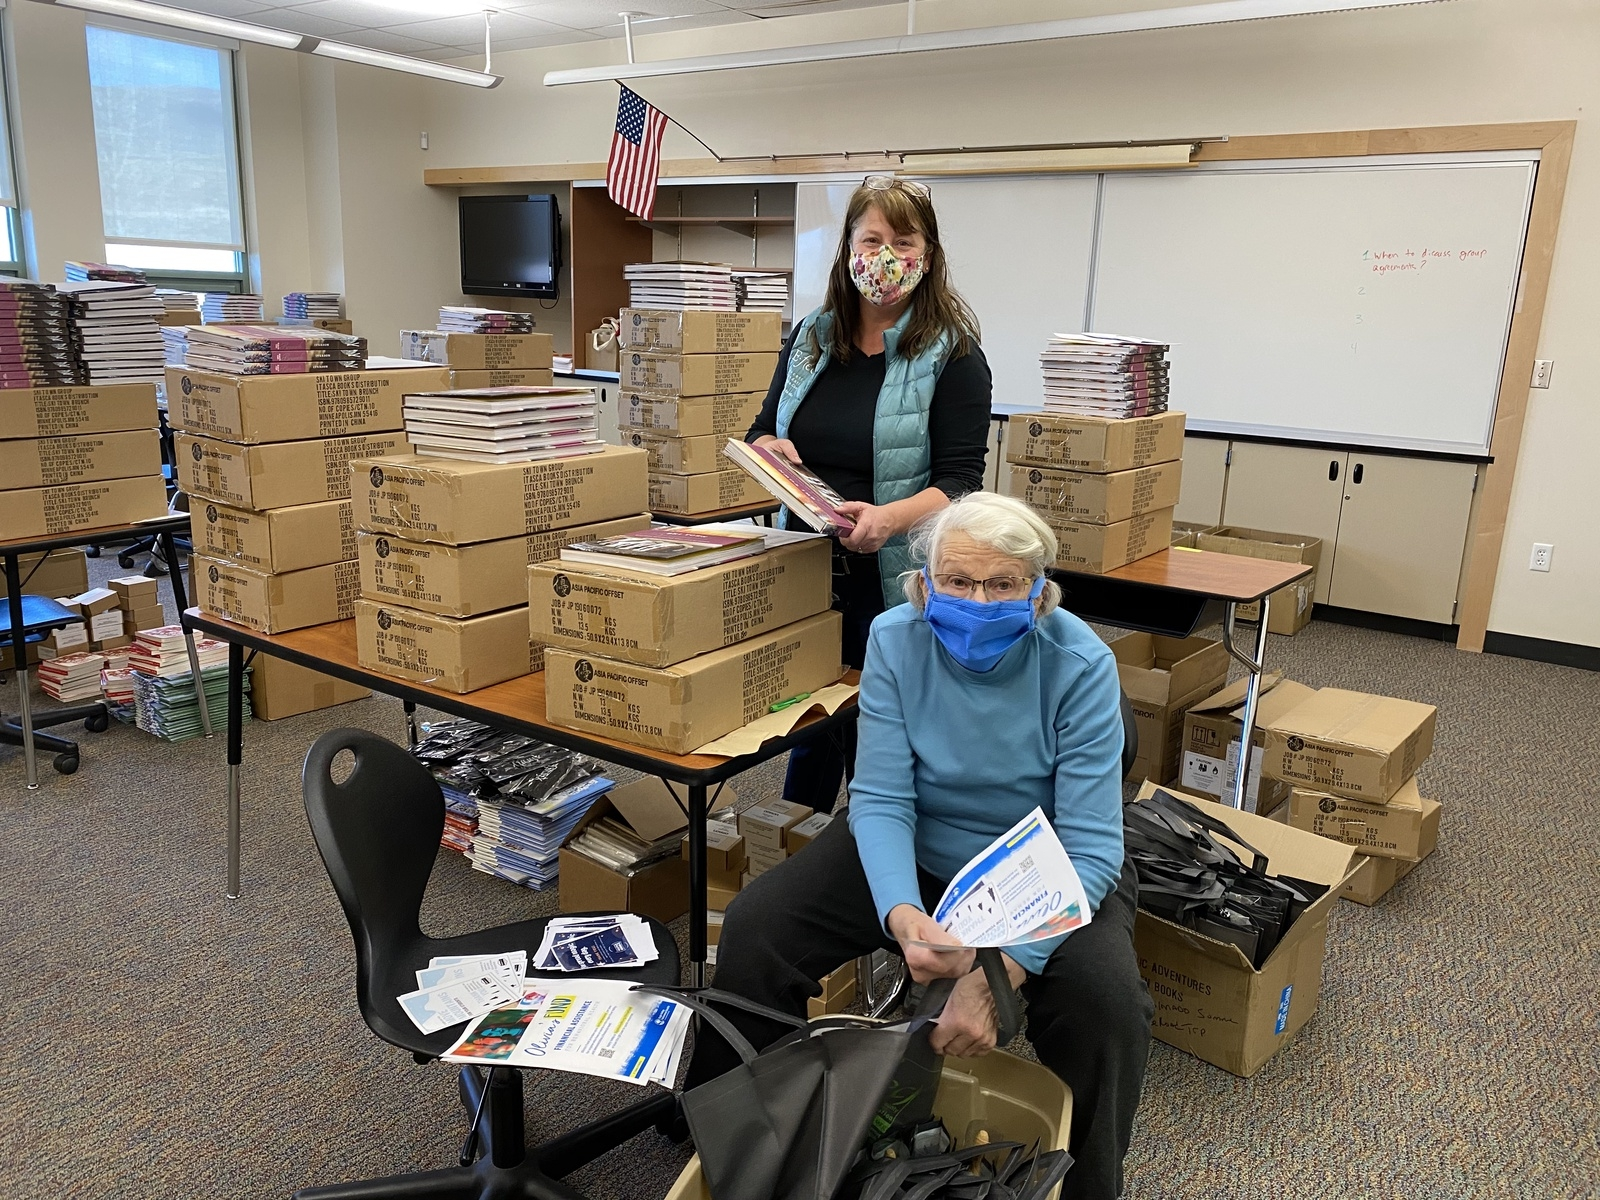 Julie Overy, back, and Angela Overy help pack gift bags for Eagle County Schools employees. The Education Foundation of Eagle County is delivering gift bags to every school employee to say thank you.